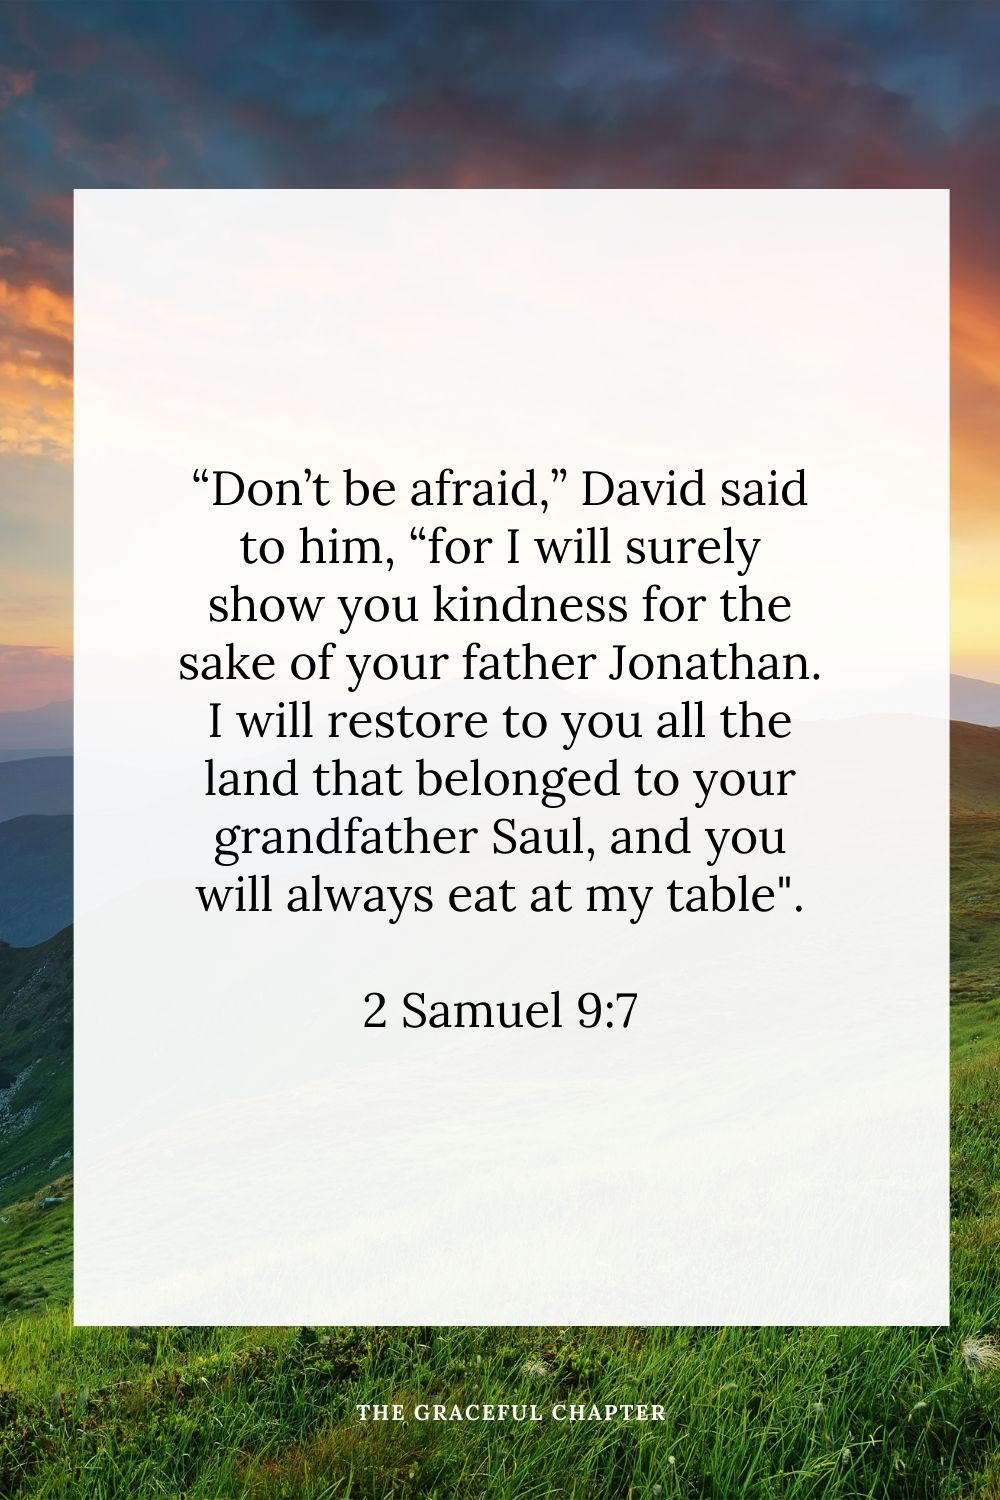 """Don't be afraid,"" David said to him, ""for I will surely show you kindness for the sake of your father Jonathan. I will restore to you all the land that belonged to your grandfather Saul, and you will always eat at my table."" 2 Samuel 9:7"